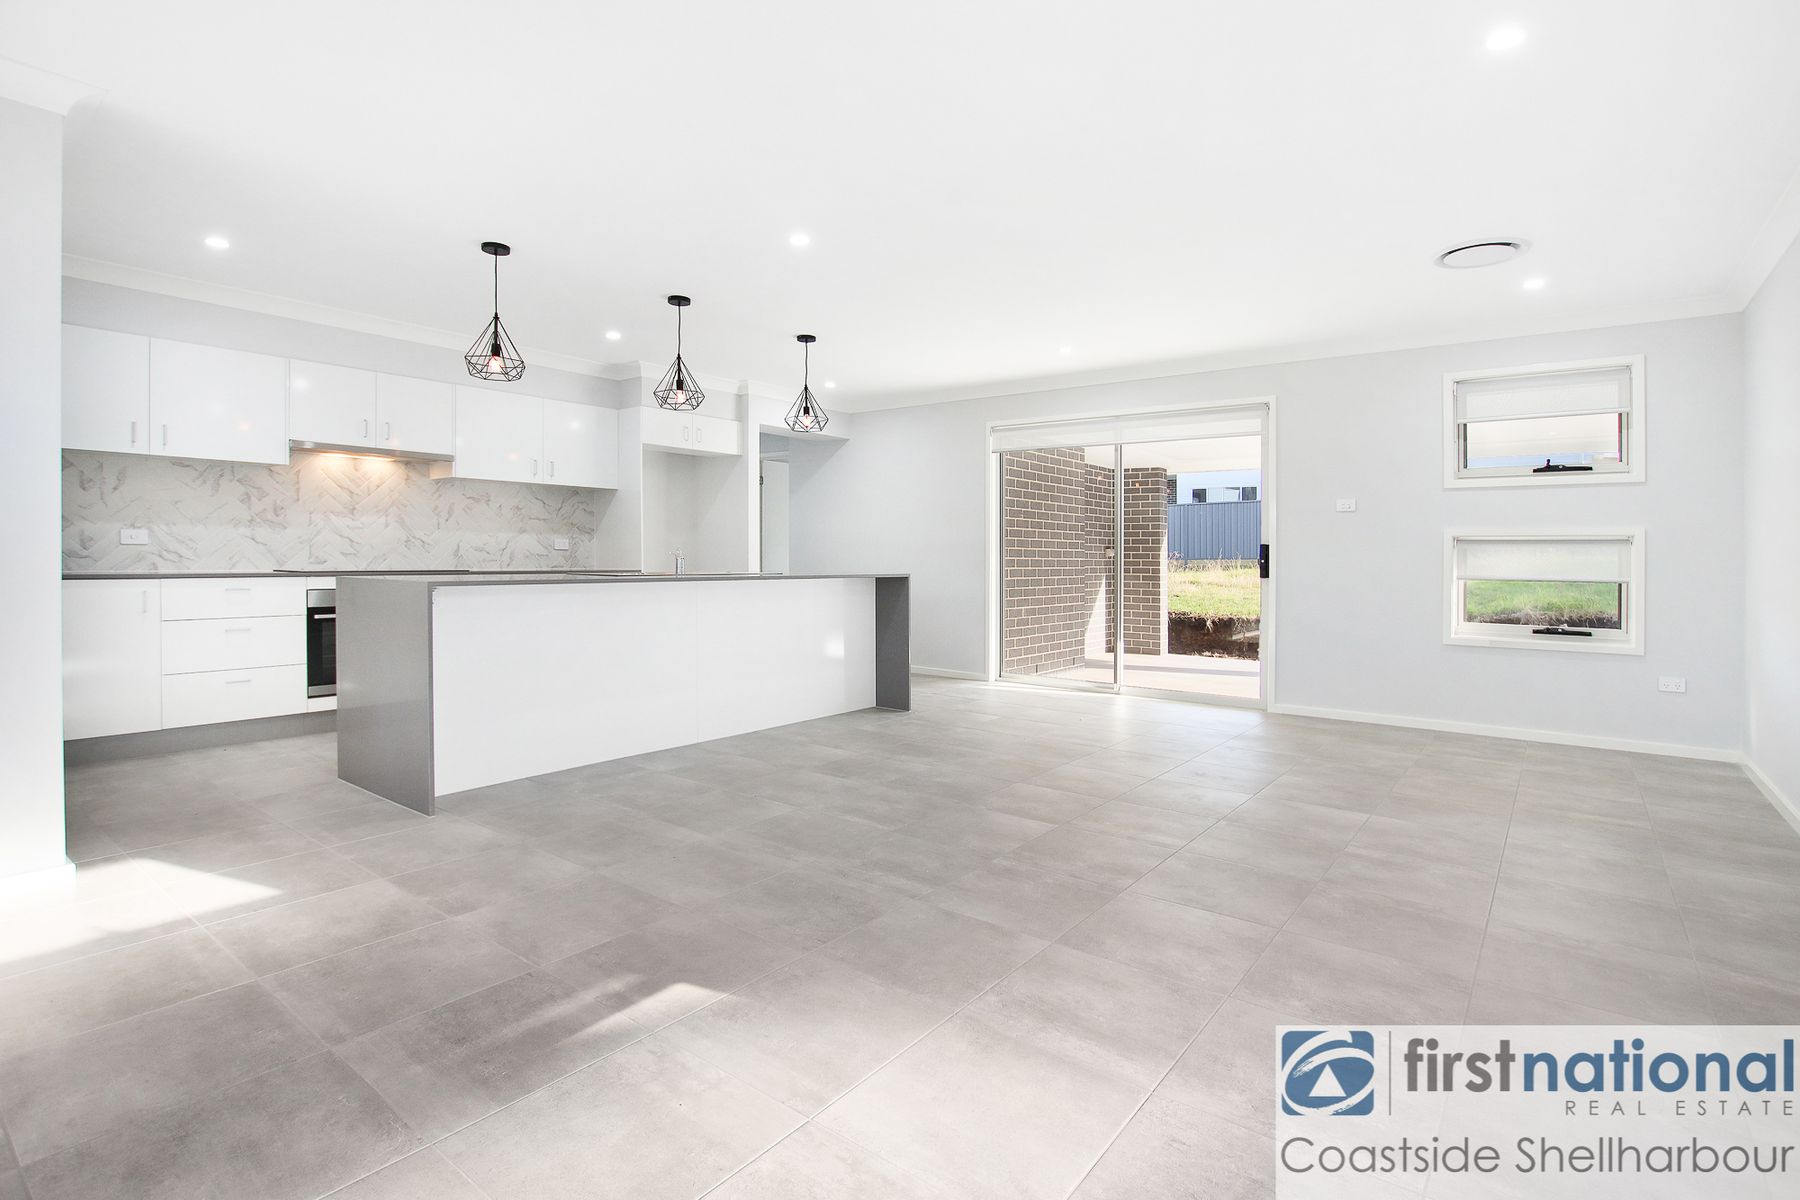 61 Dunmore Road, Shell Cove, NSW 2529